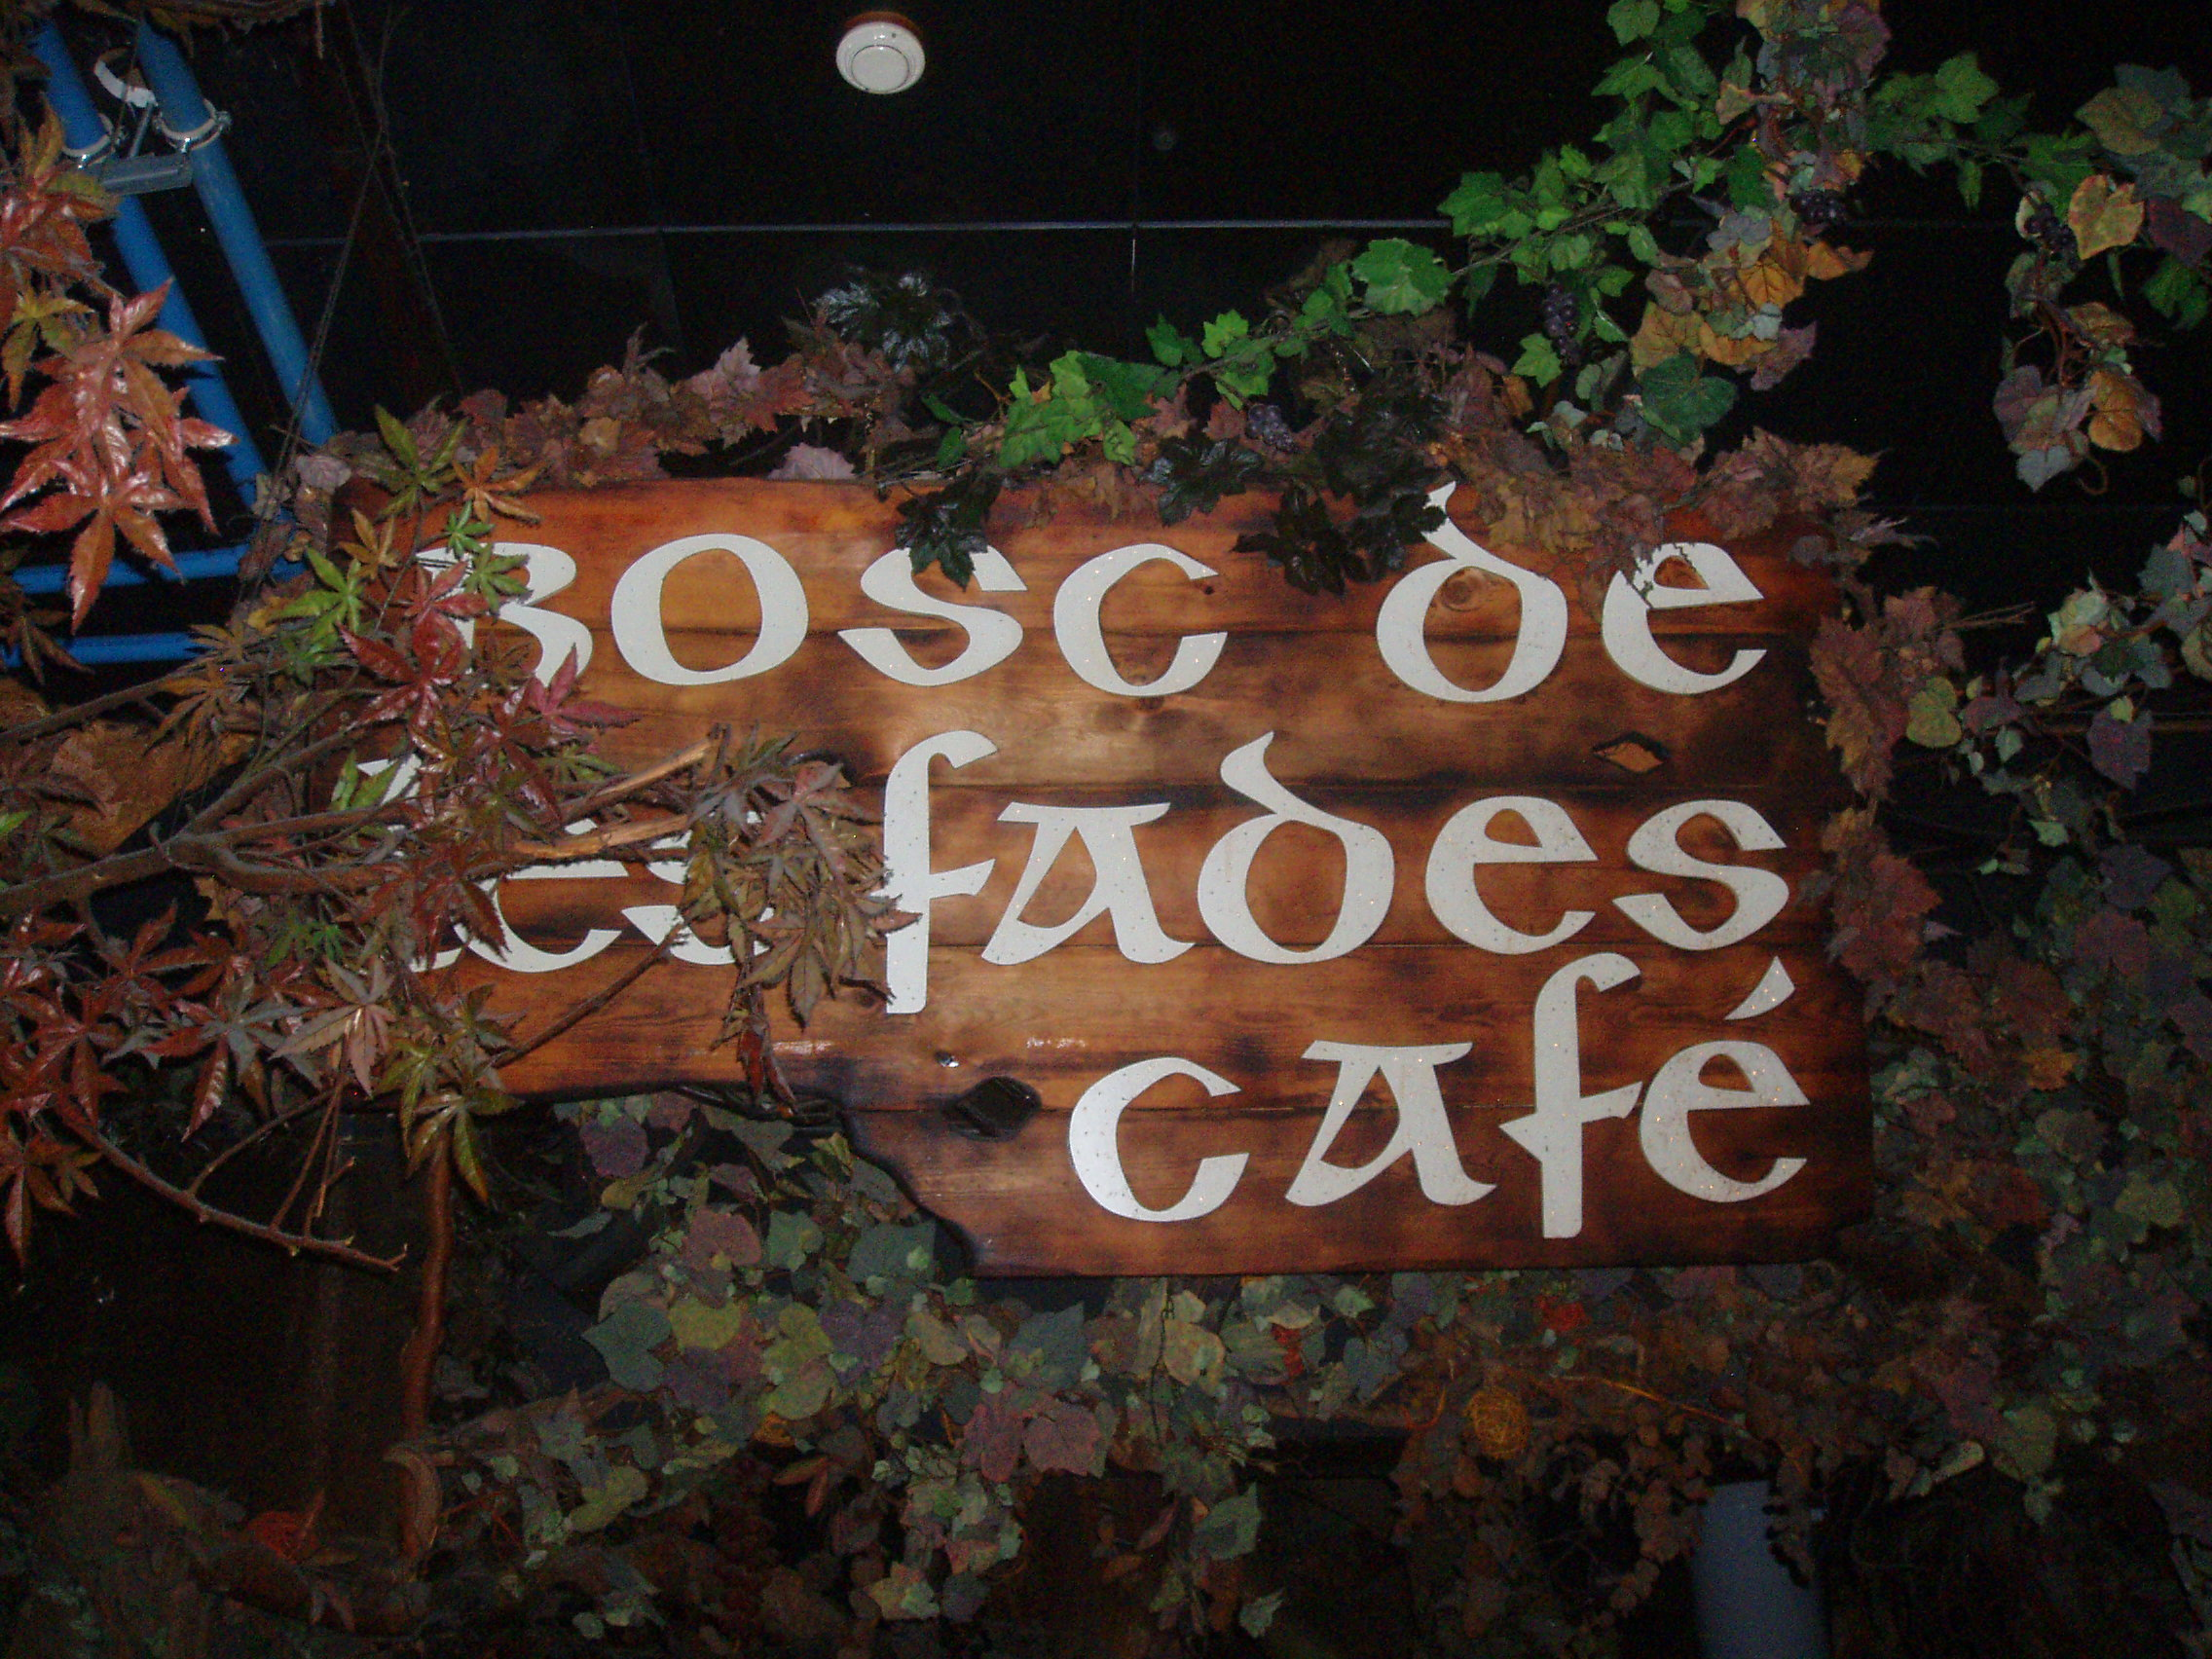 Drinking with fairies at El Bosc de les Fades